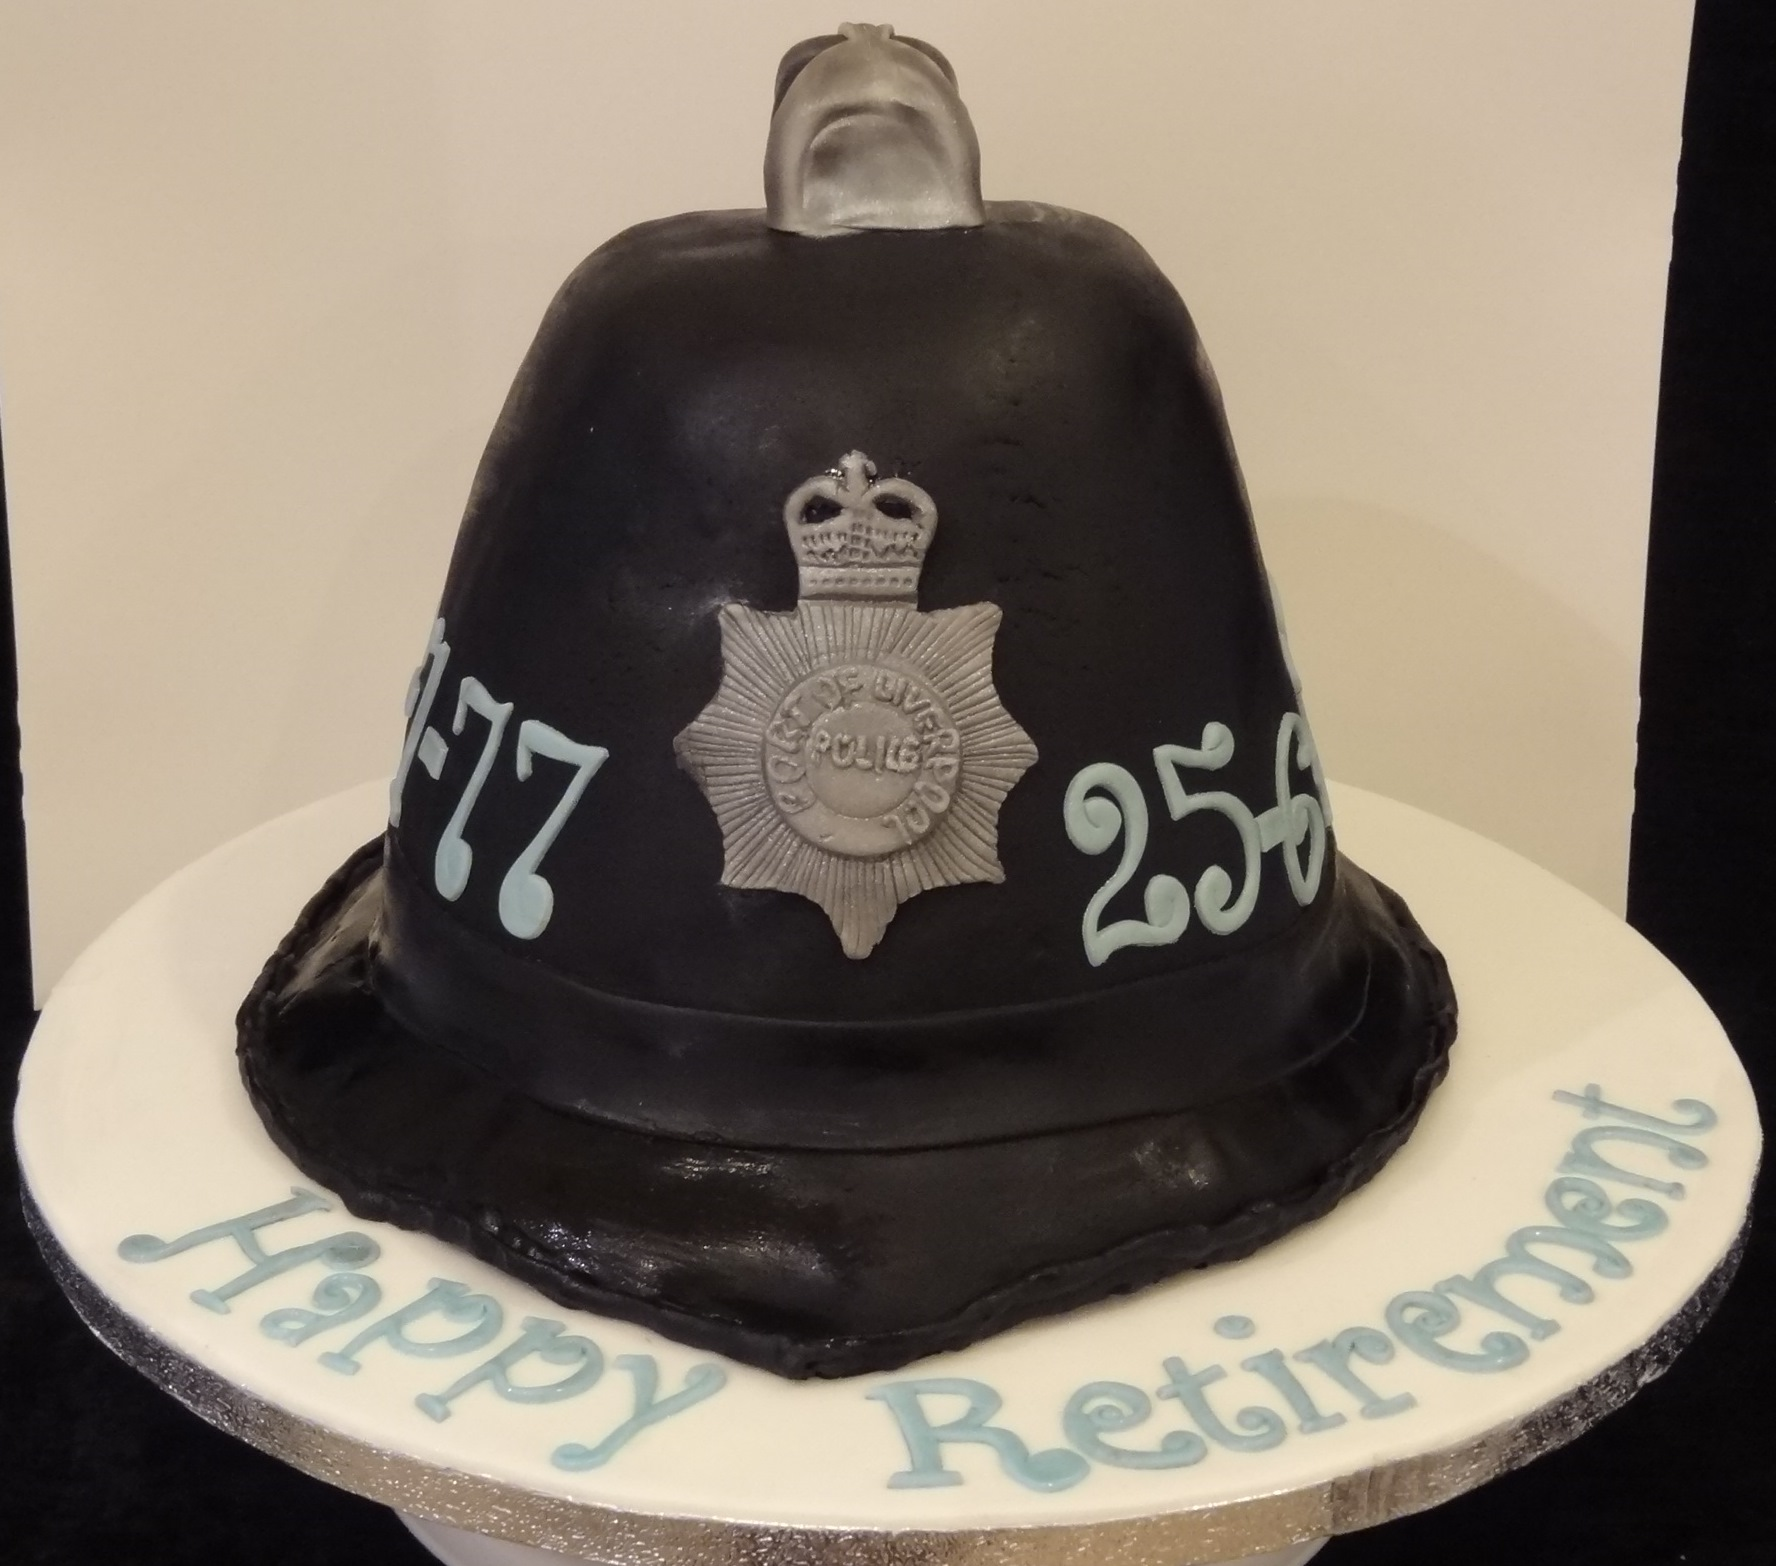 Funny Police Retirement Cakes